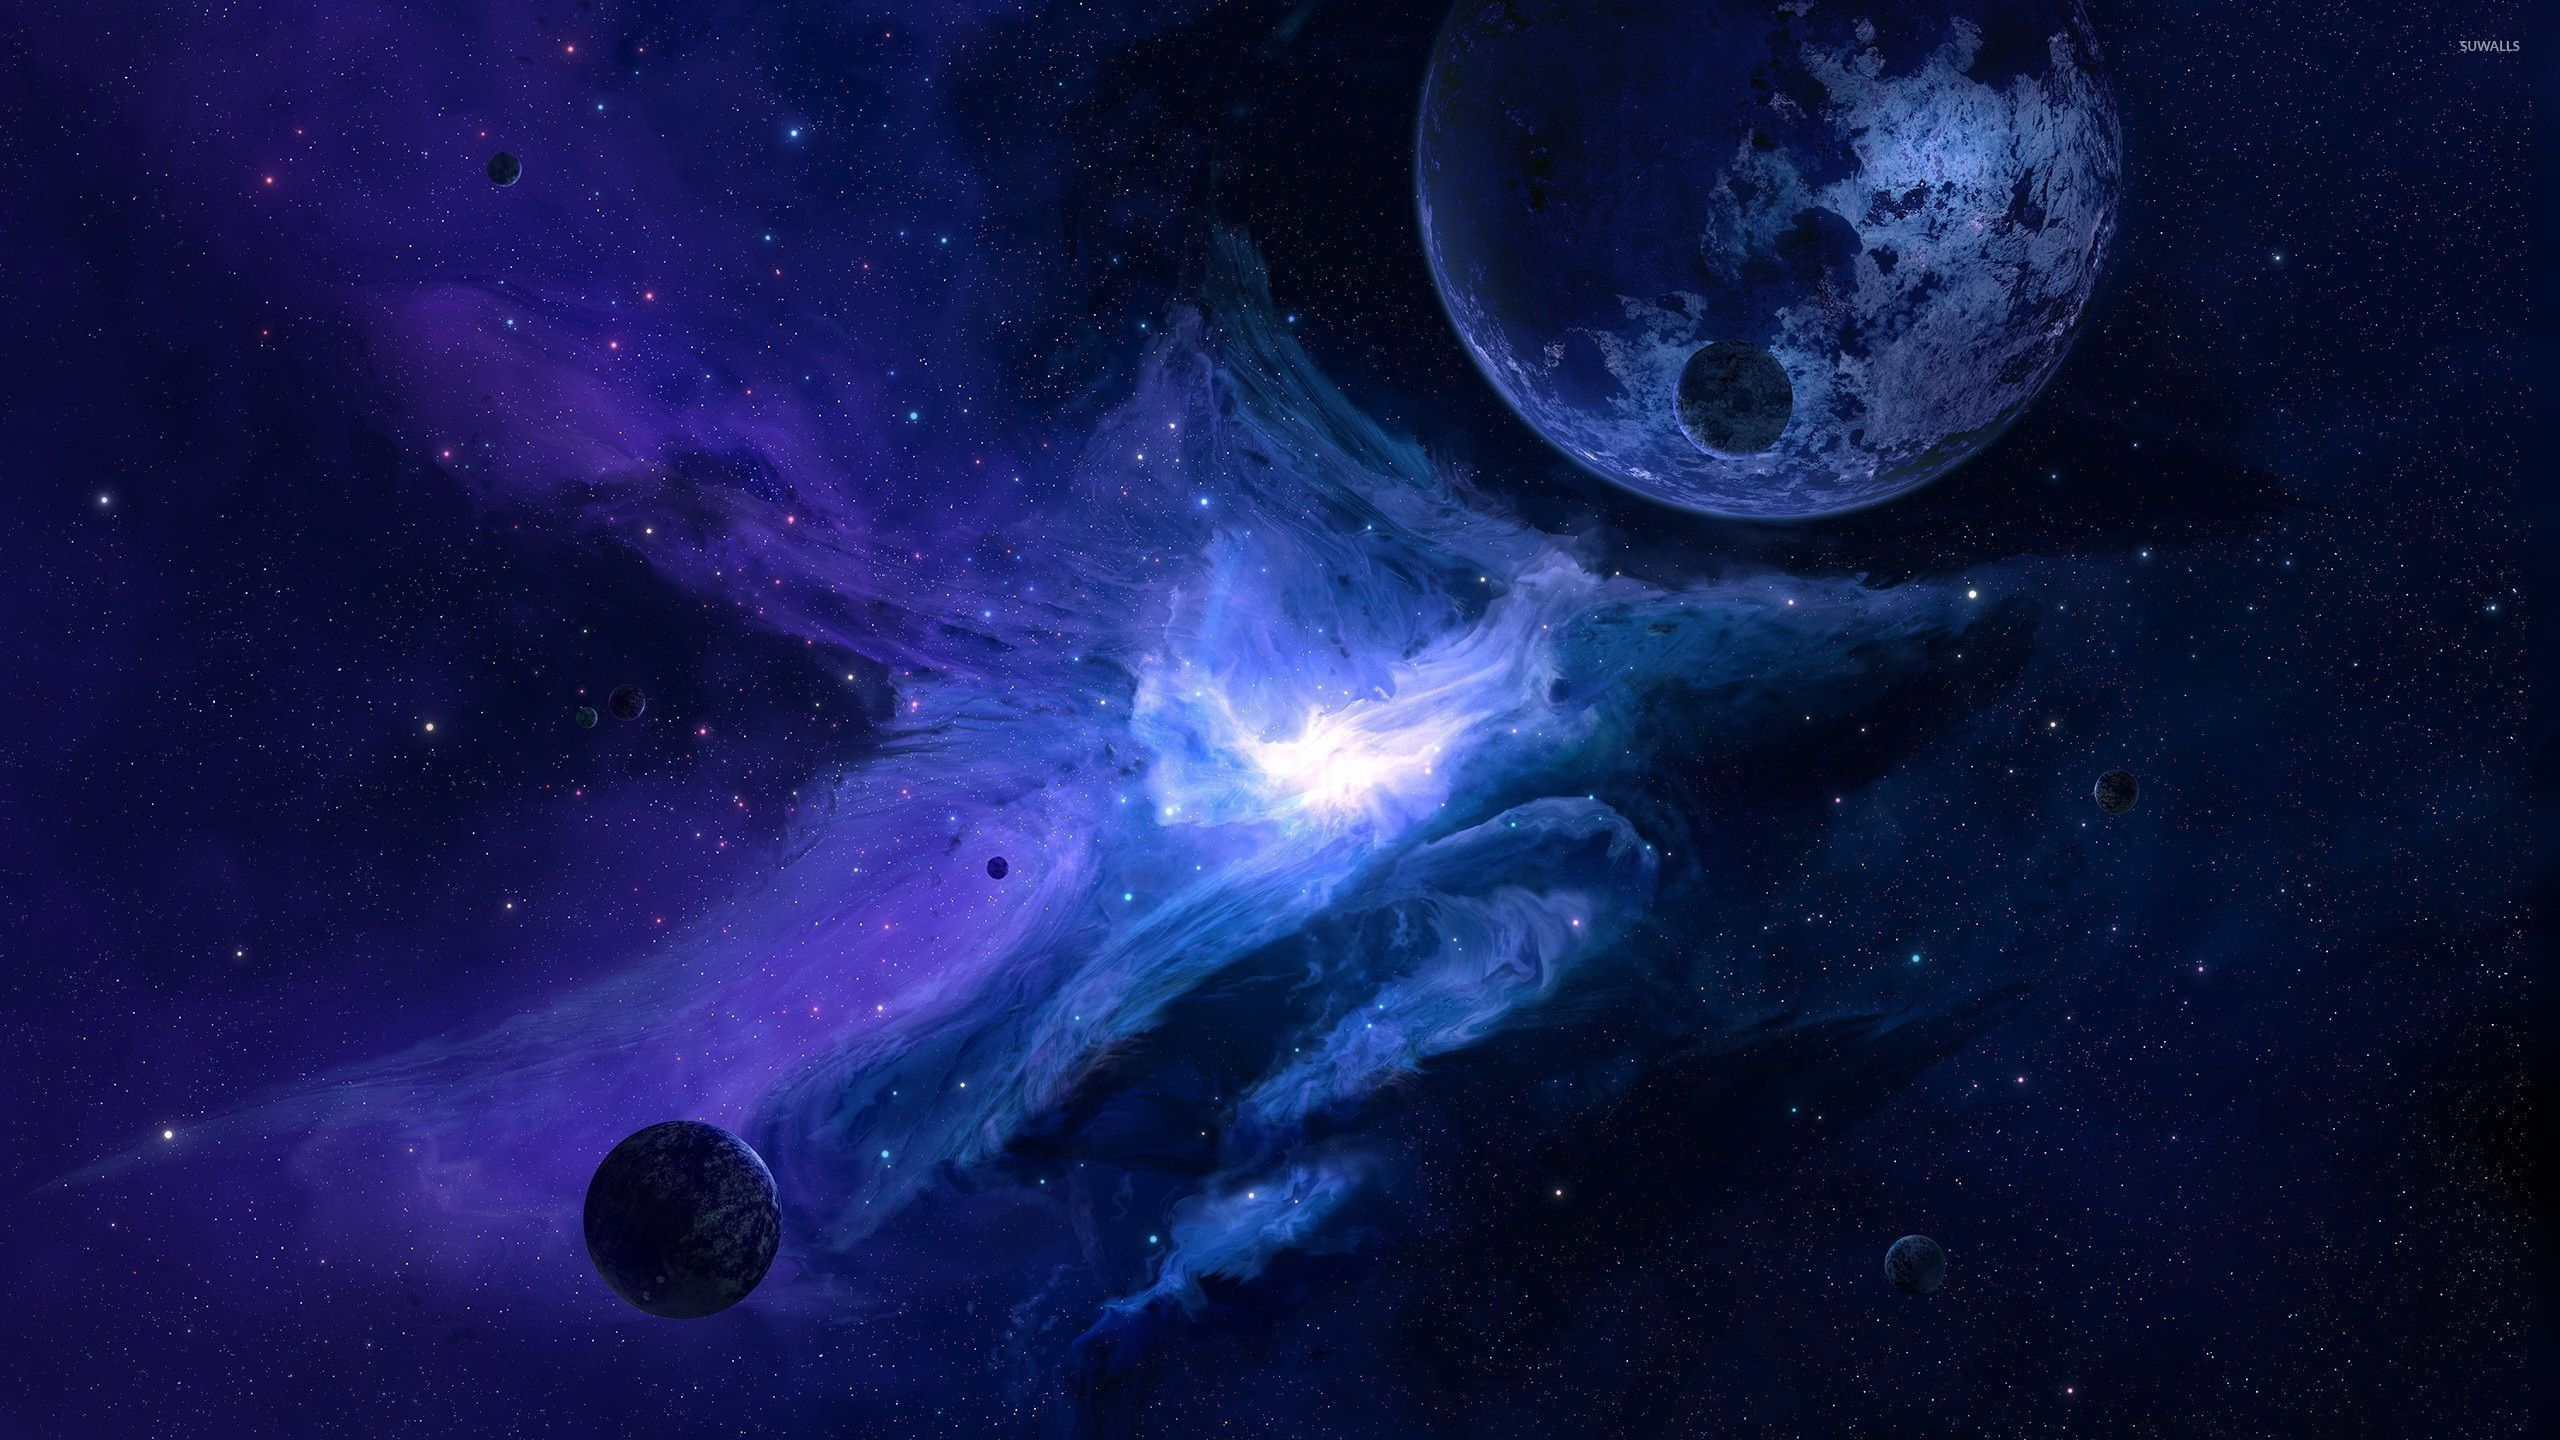 planet in the blue galaxy wallpaper space wallpapers